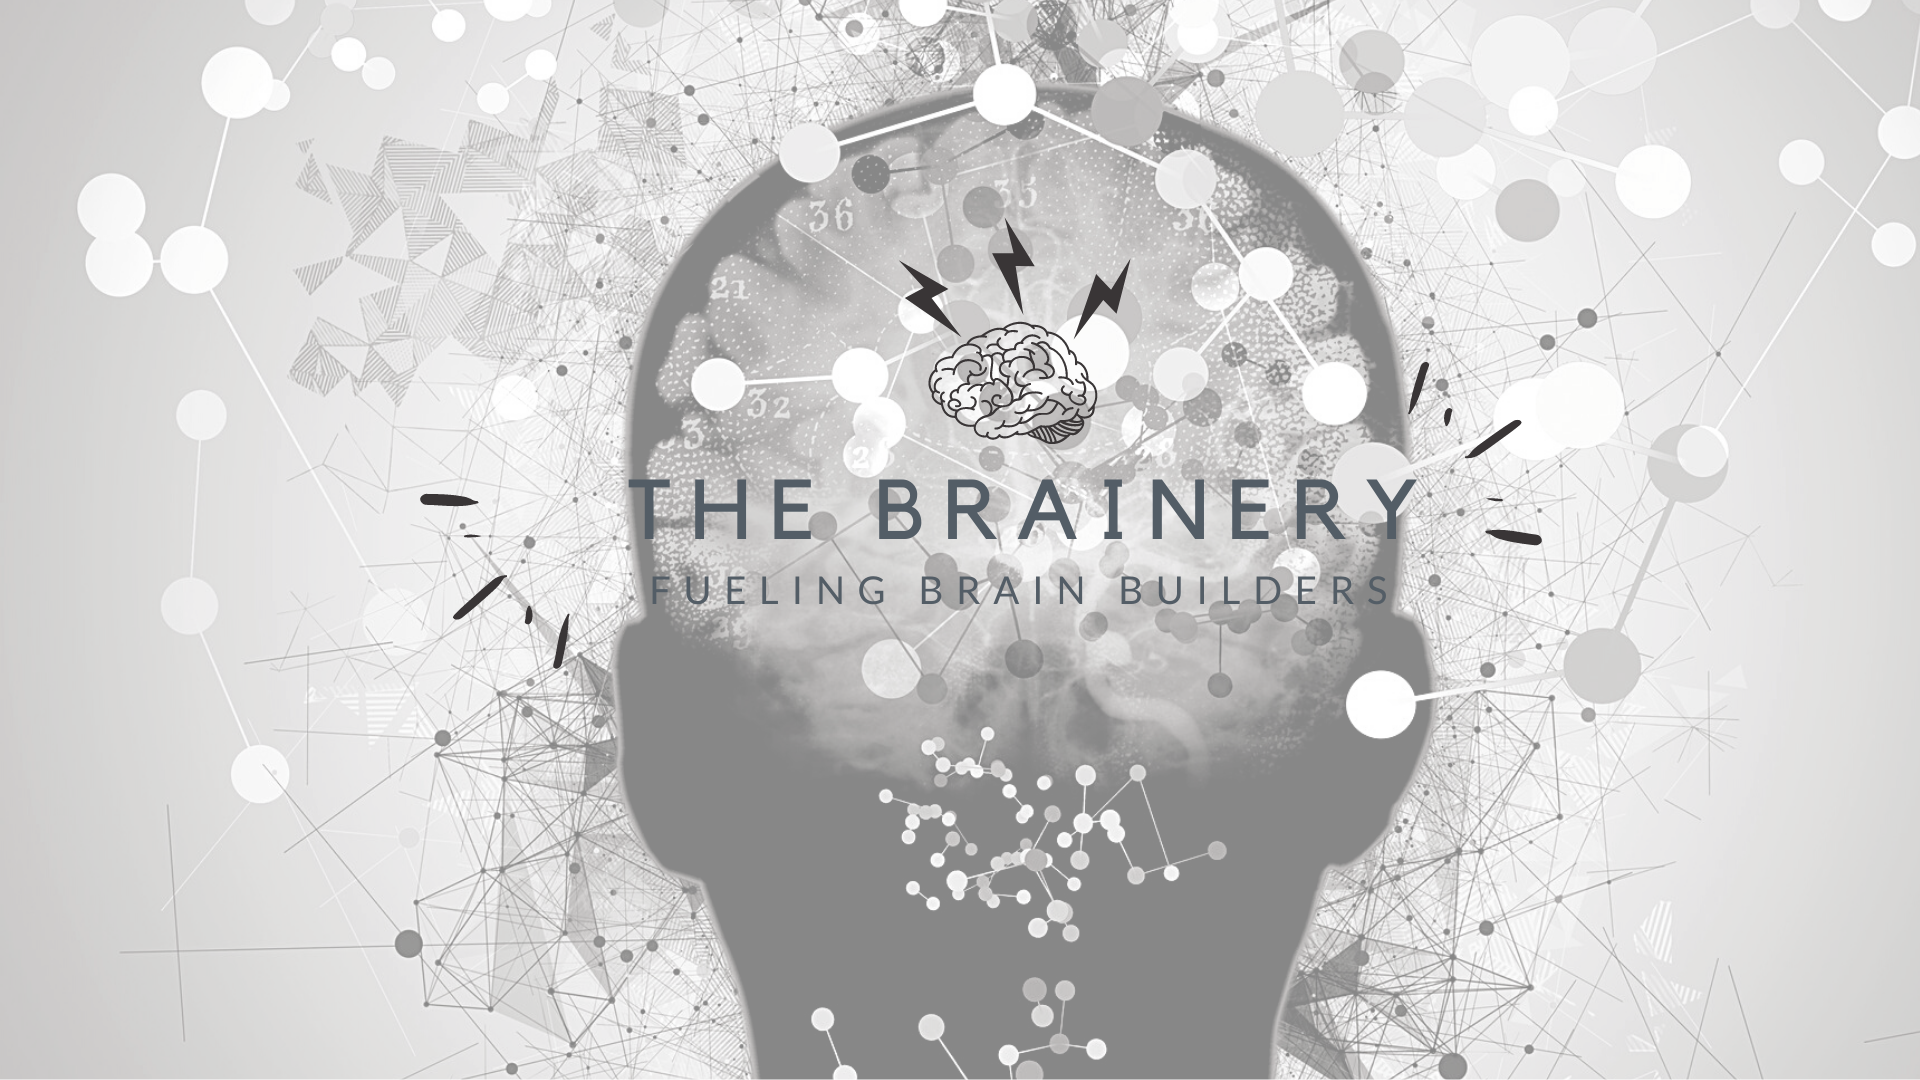 Copy of The Brainery (2)